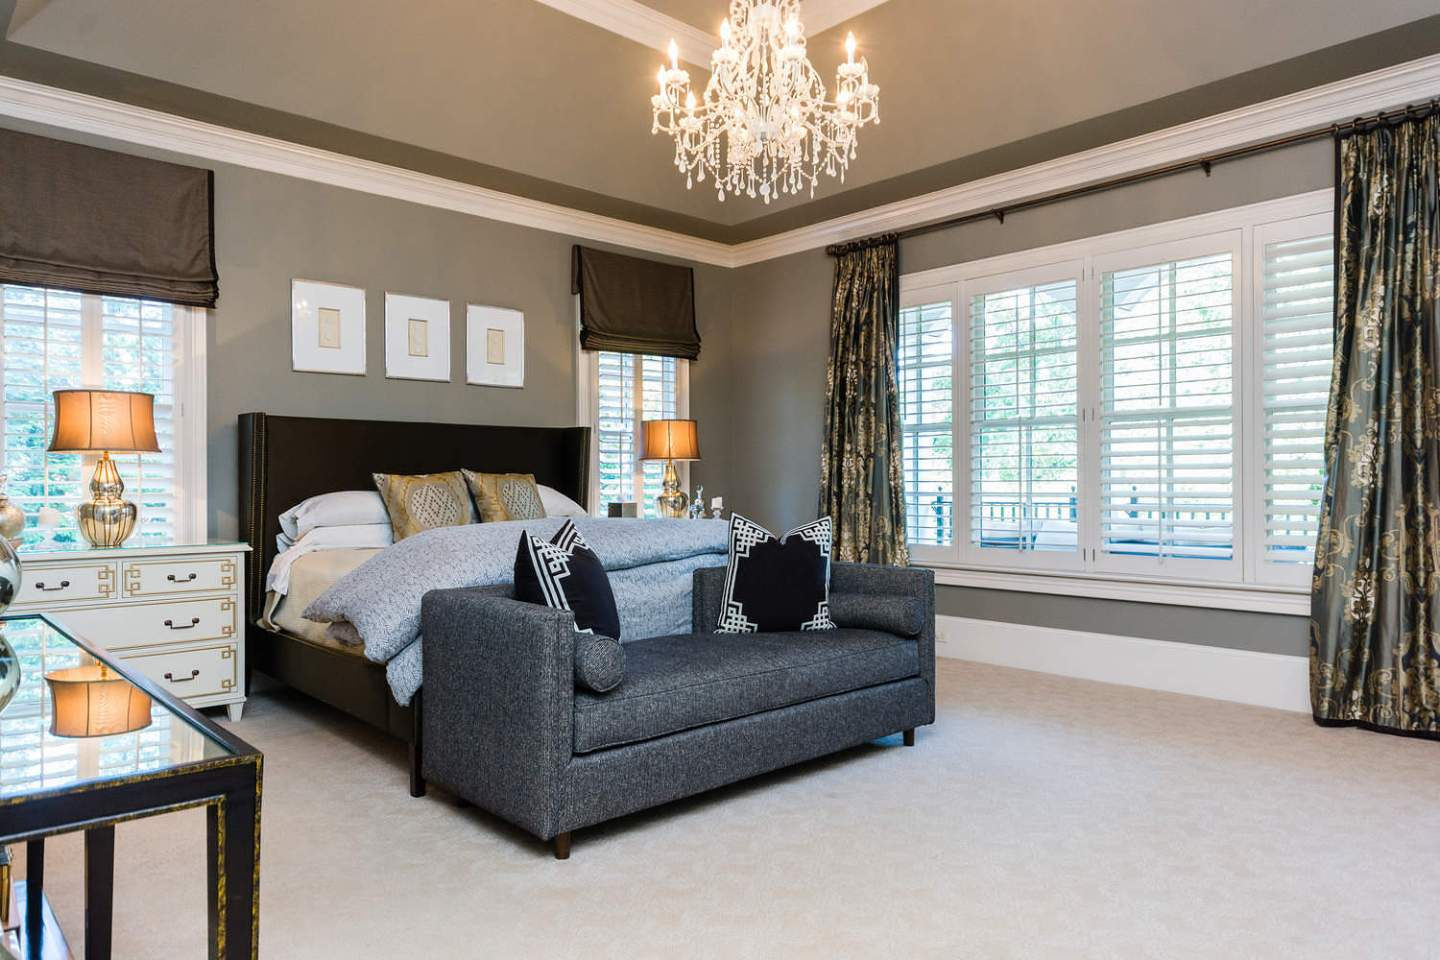 Gray Master Bedroom. How to decorate your house in gray. White chandelier and gray bench in front of Brown Silk bed.